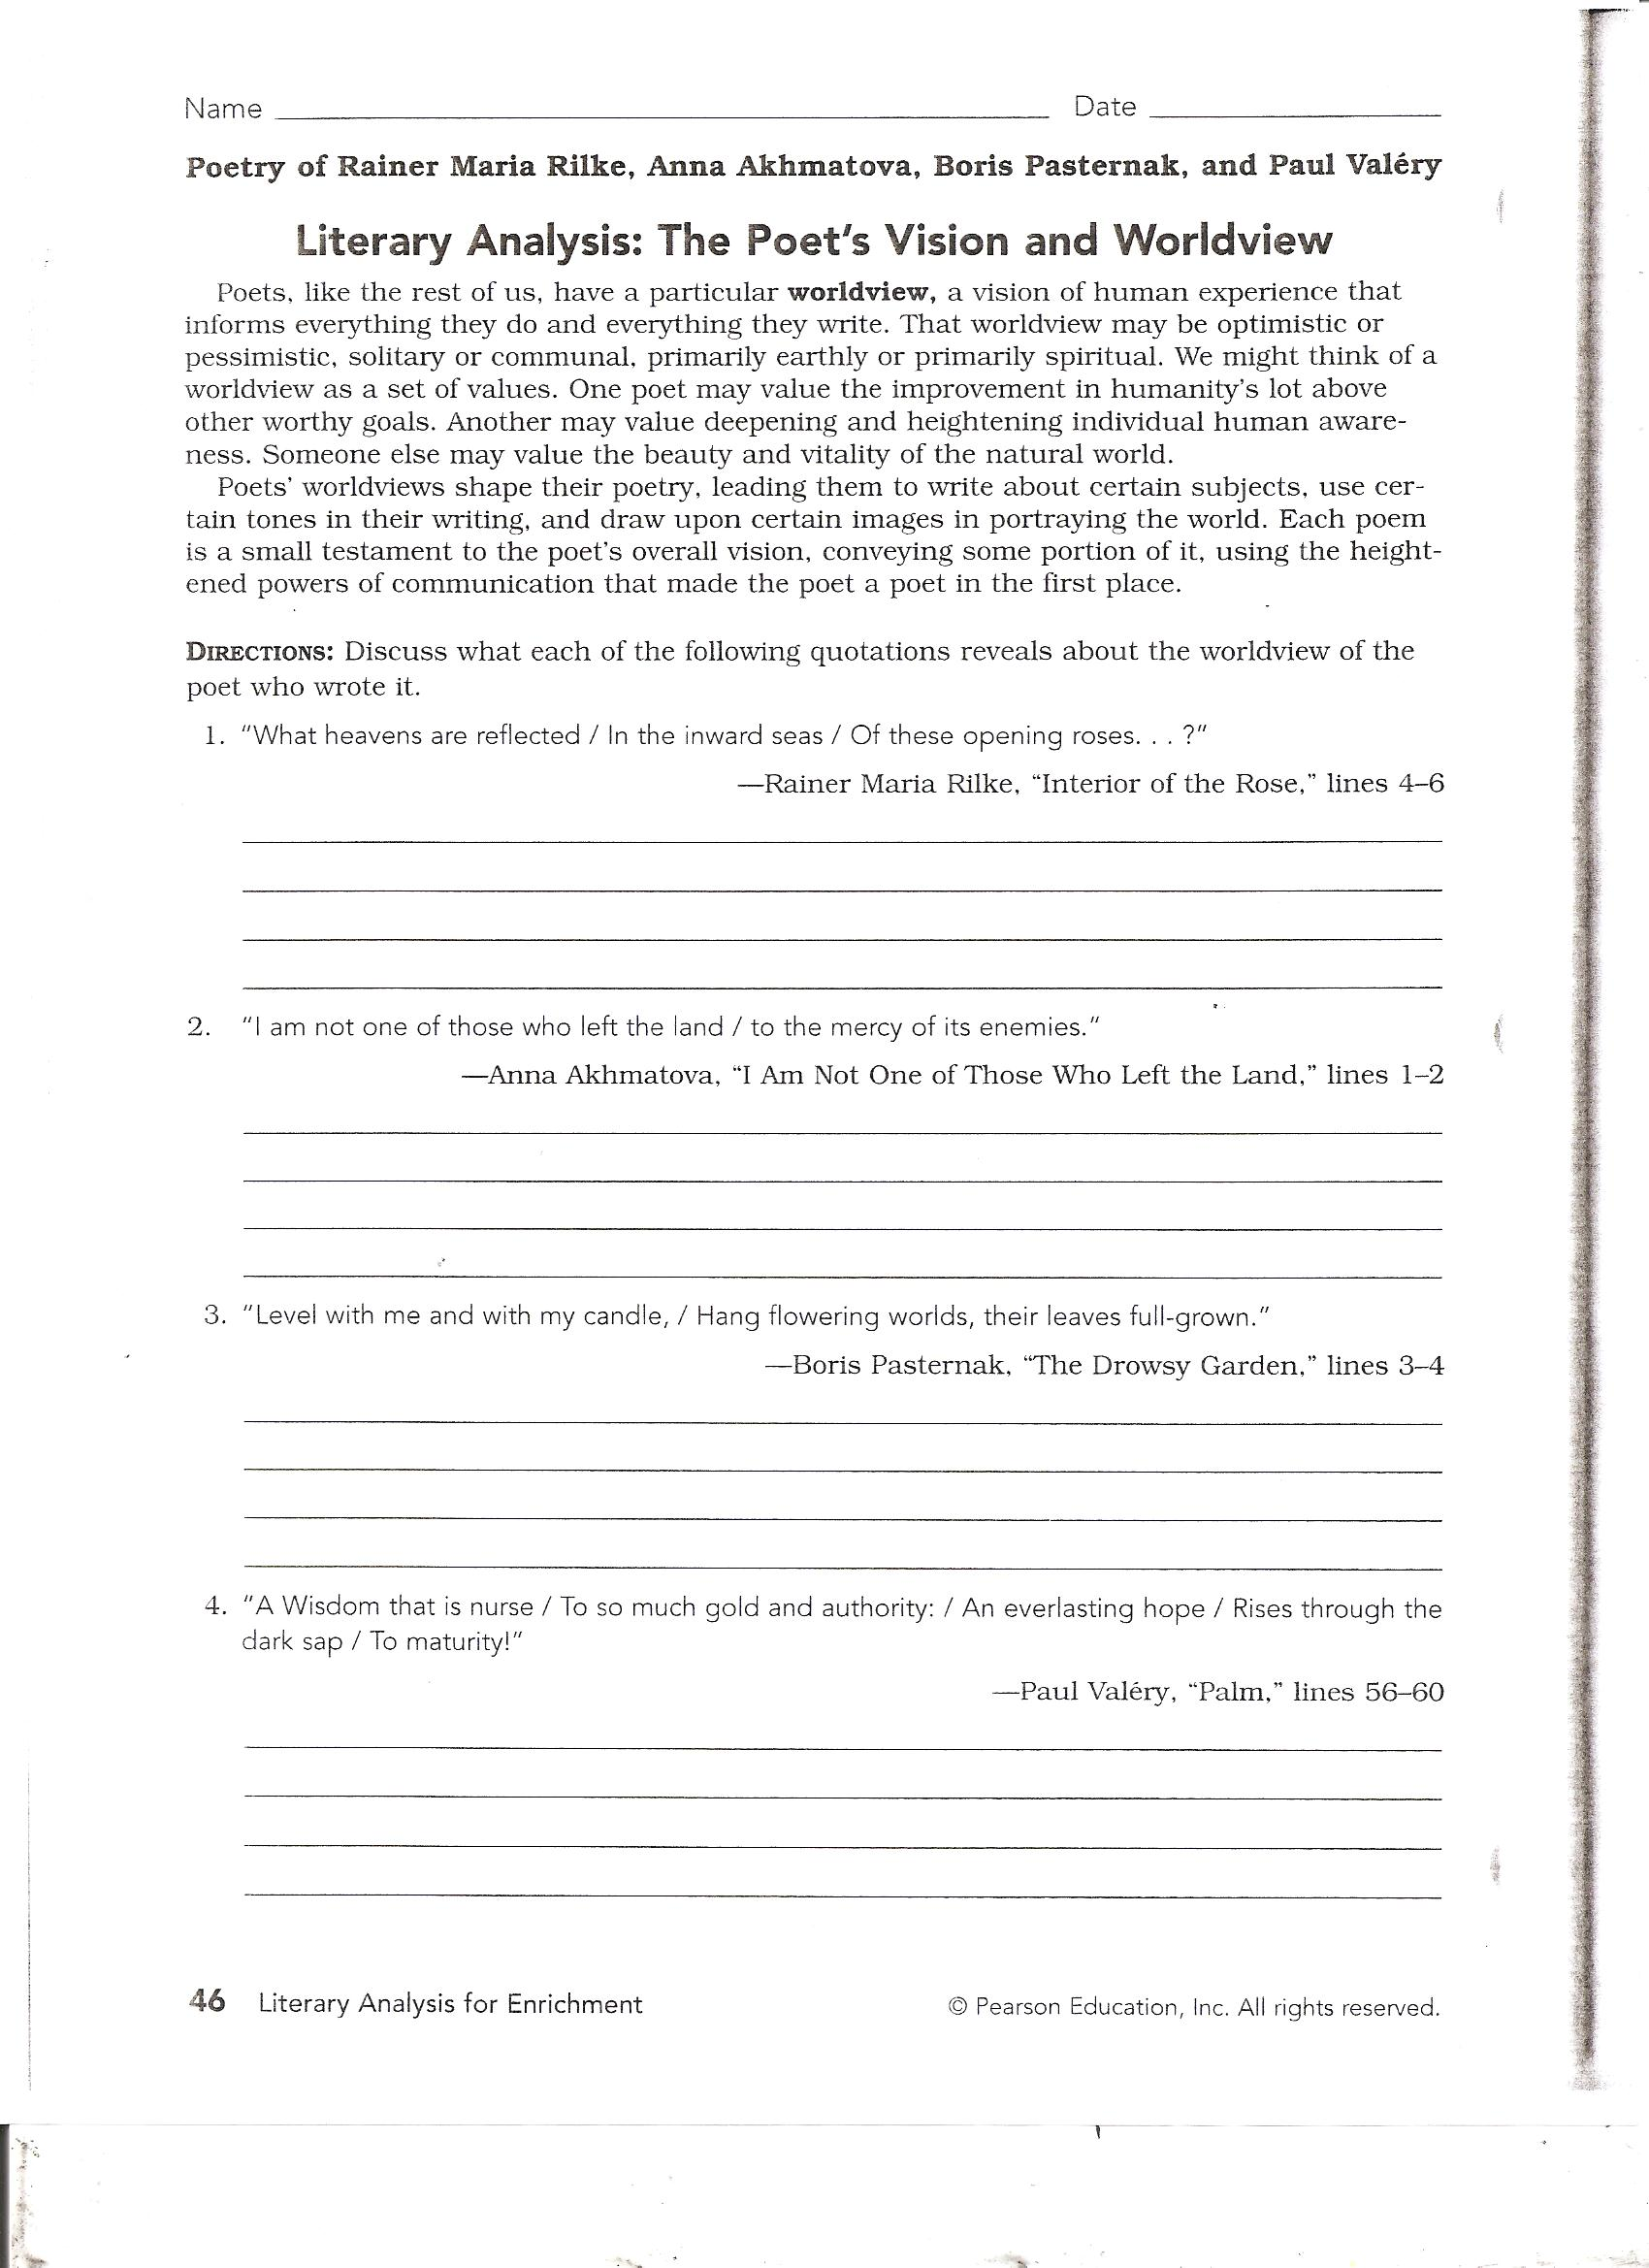 Worksheets Analyzing A Poem Worksheet analyzing a poem worksheet bloggakuten